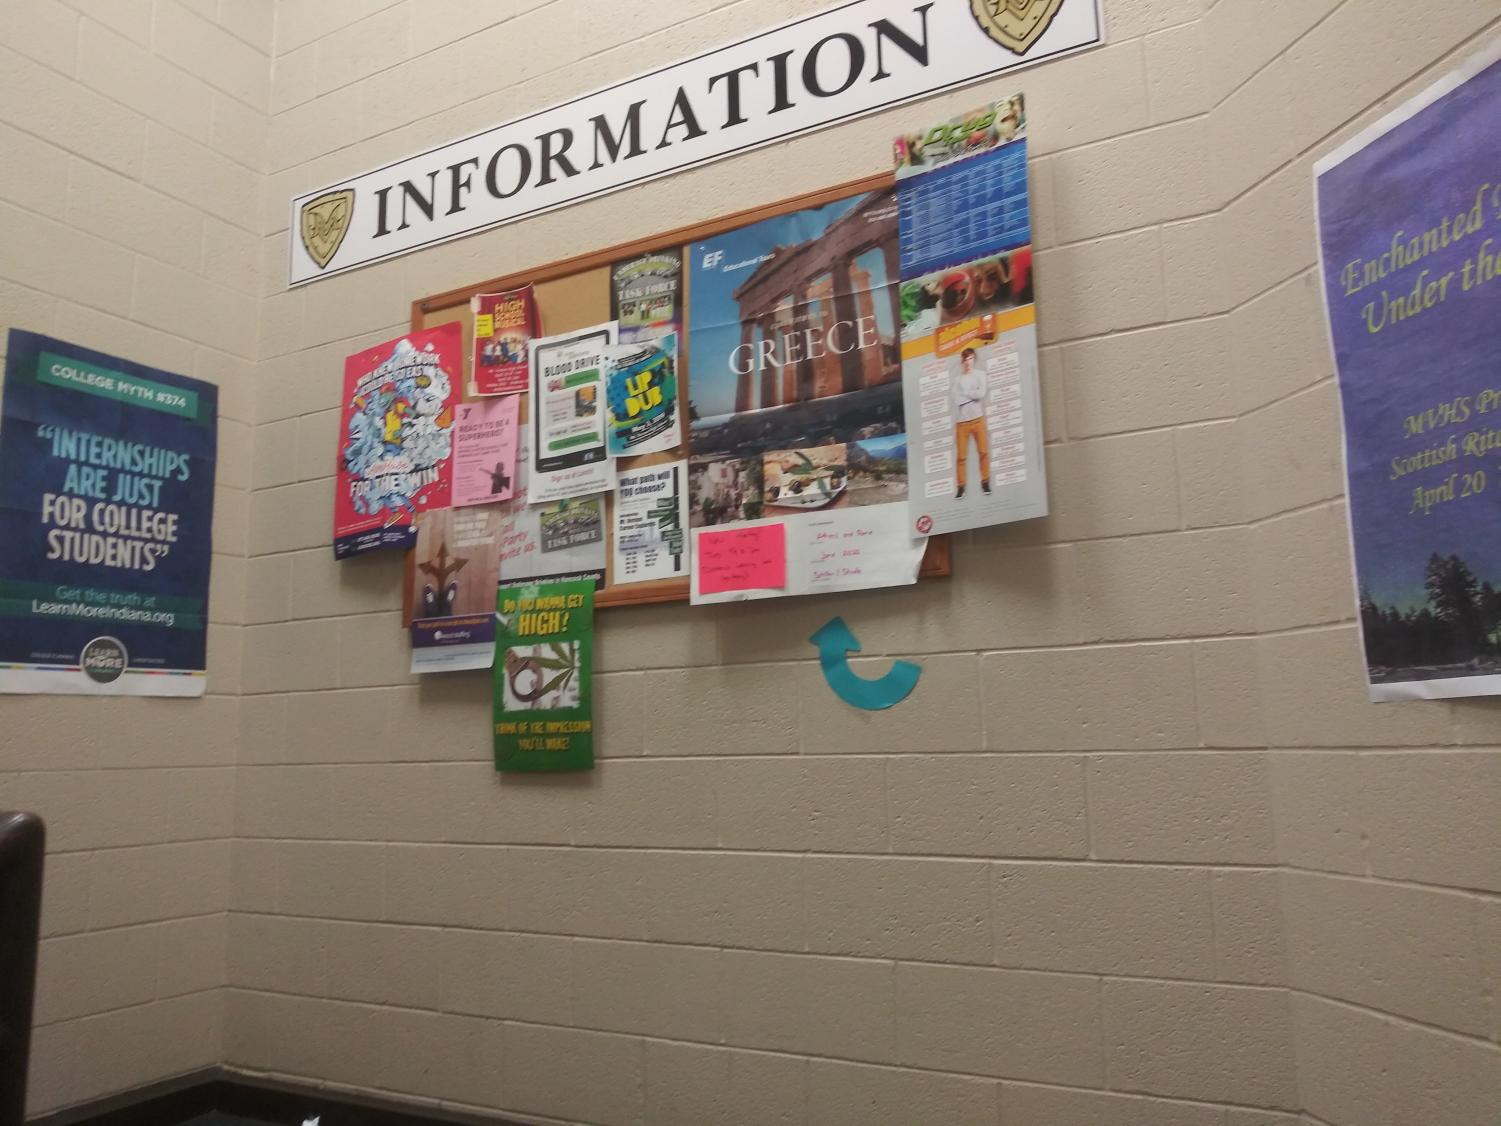 Information+wall